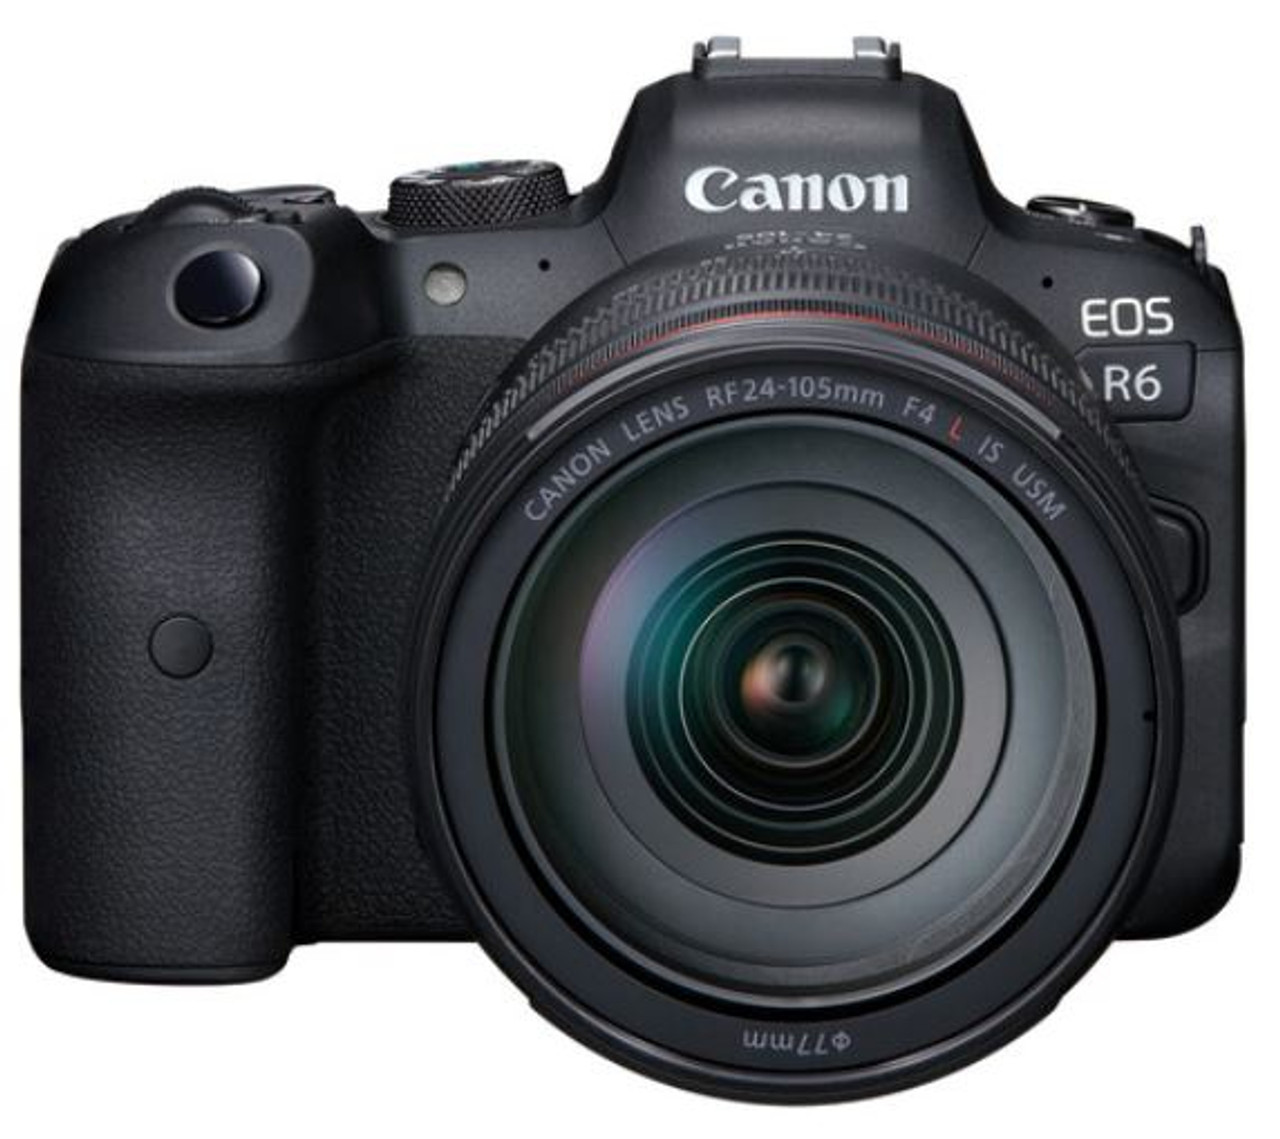 Canon EOS R6 Mirrorless Digital Camera with RF 24-105mm f/4L IS USM Lens